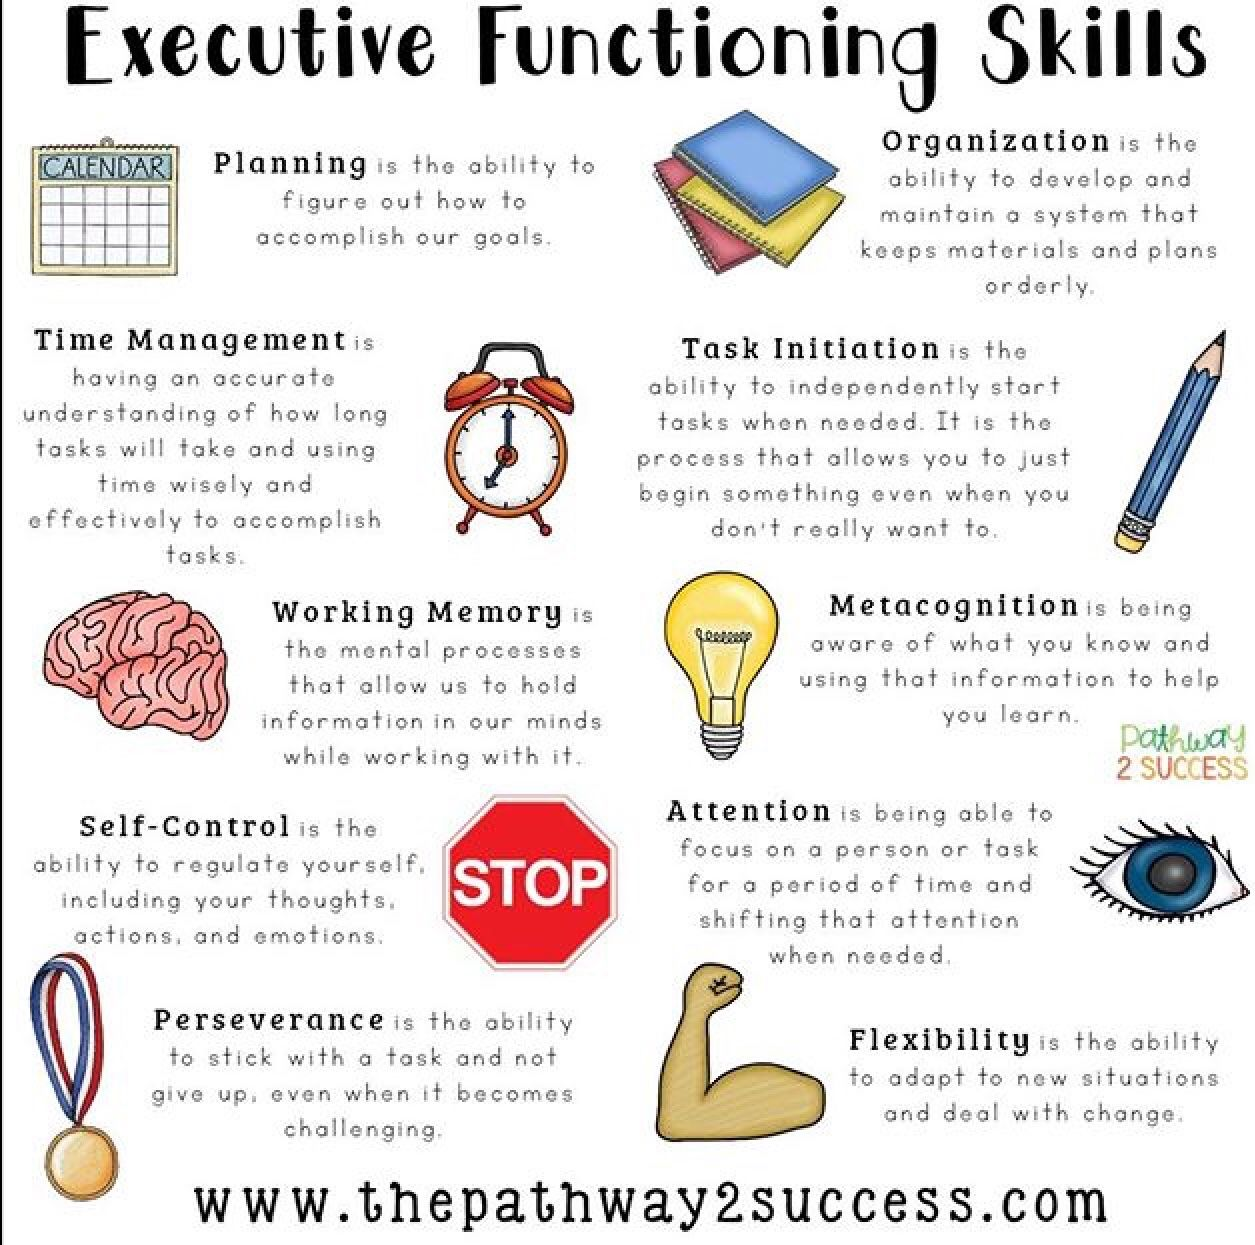 Pin By Lizzy Clem On Diverse Learners Executive Functioning Skills Executive Functioning Metacognition